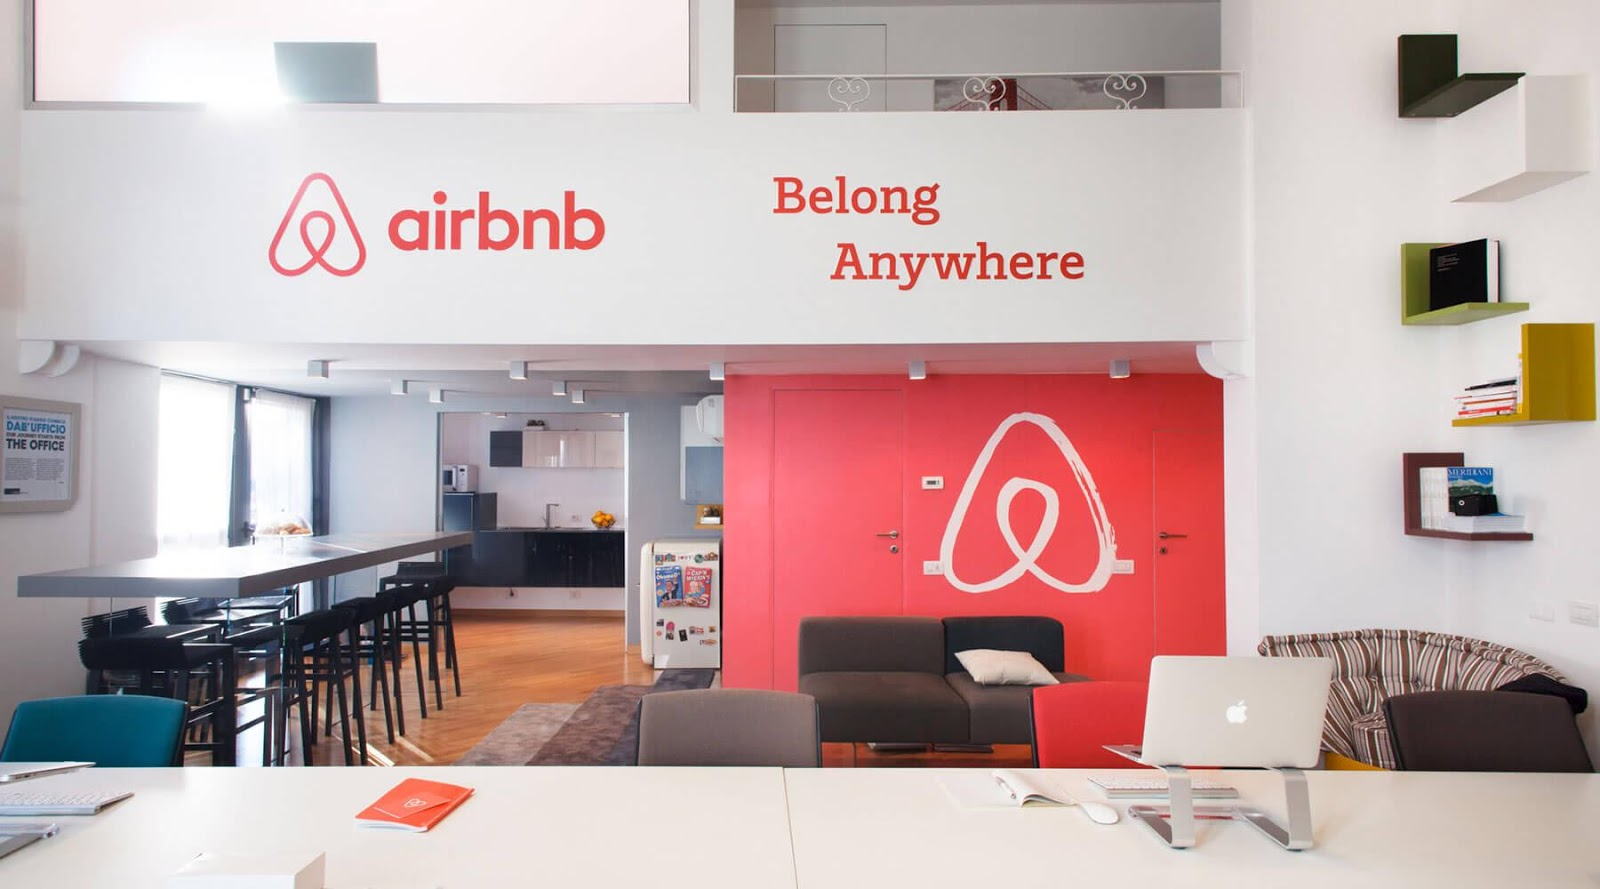 Airbnb's Brand